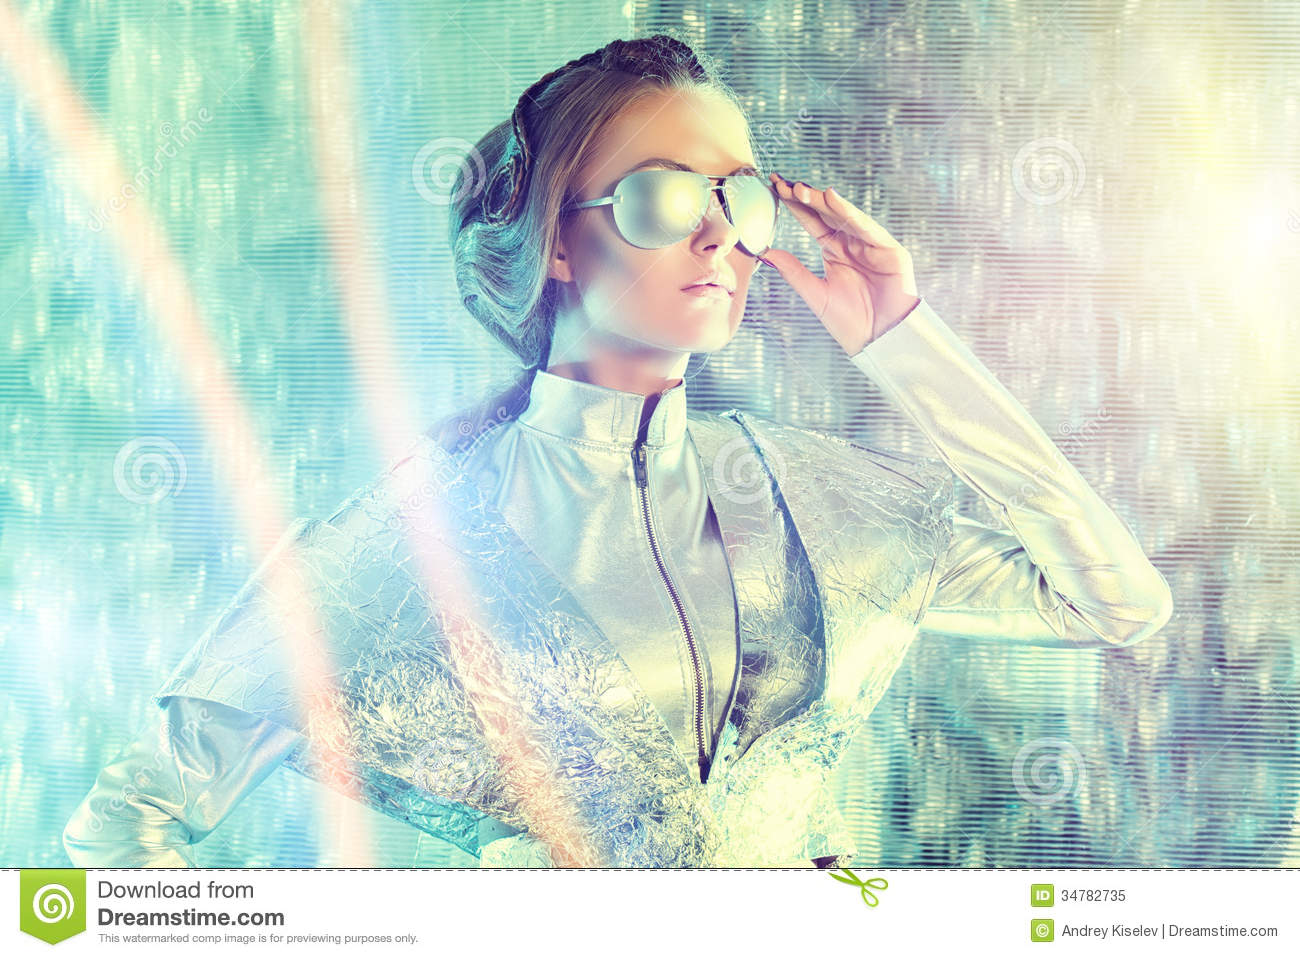 technology-beautiful-young-woman-silver-latex-costume-glasses-futuristic-hairstyle-make-up-sci...jpg